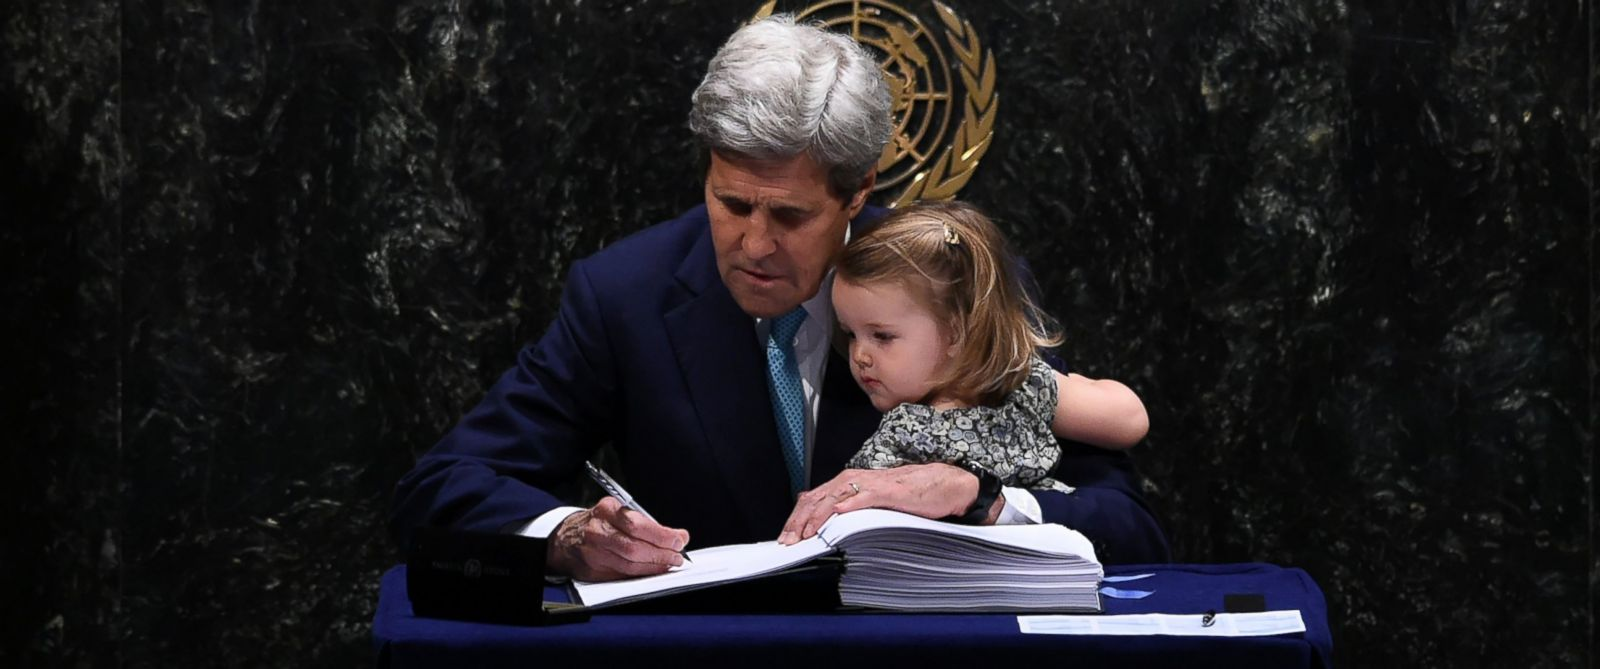 PHOTO: Secretary of State John Kerry signs the Paris Agreement at the United Nations General Assembly Hall while holding his granddaughter, Isabelle Dobbs-Higginson, April 22, 2016, in New York.